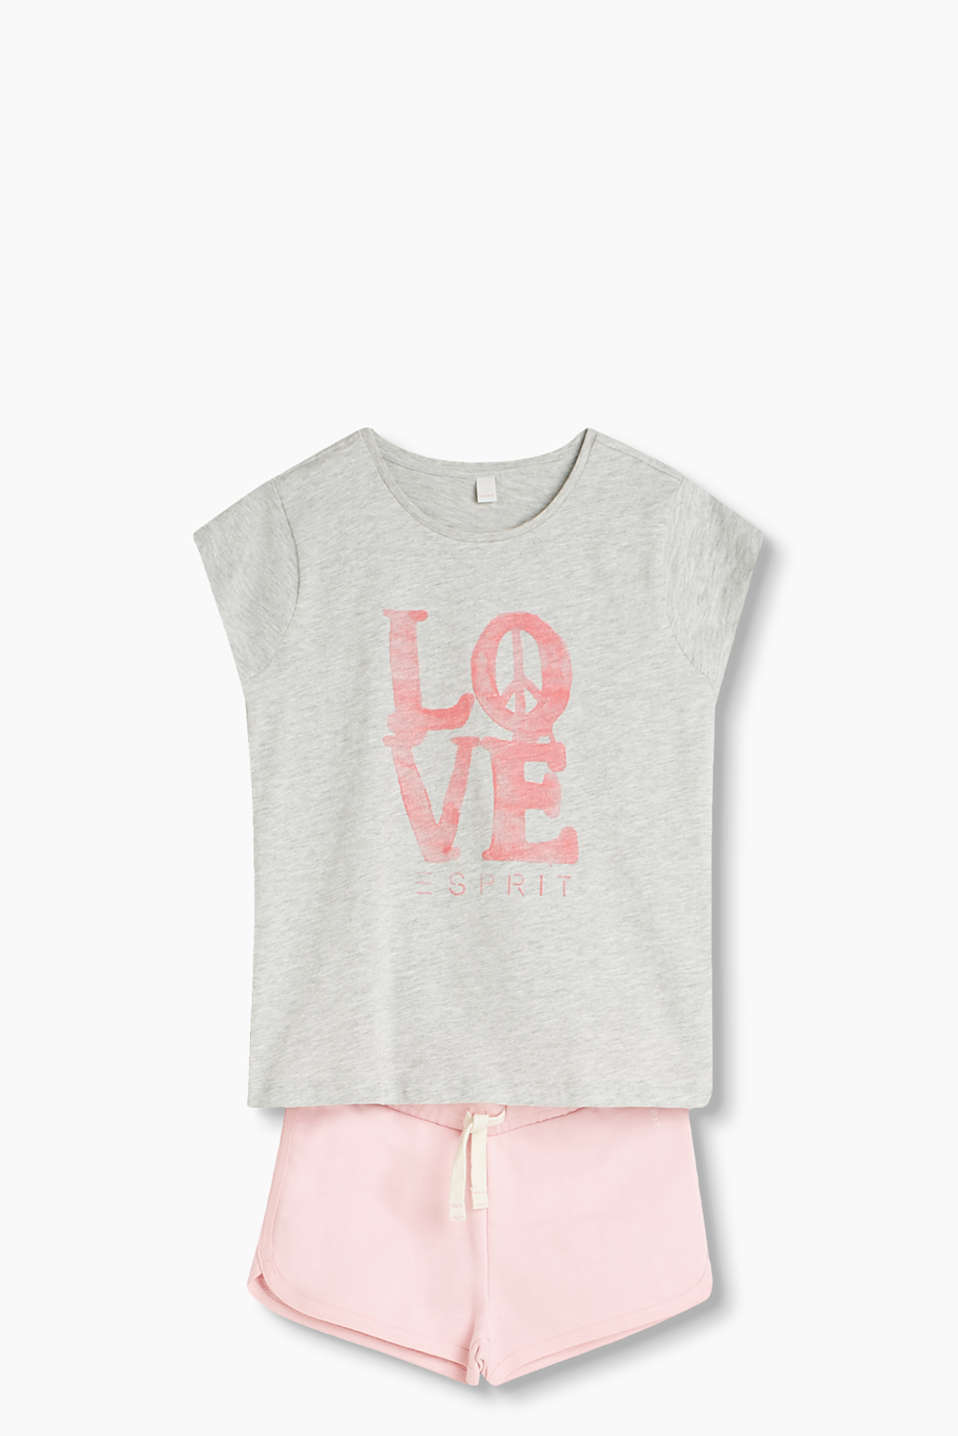 LOVE and PEACE: T-shirt in soft cotton jersey